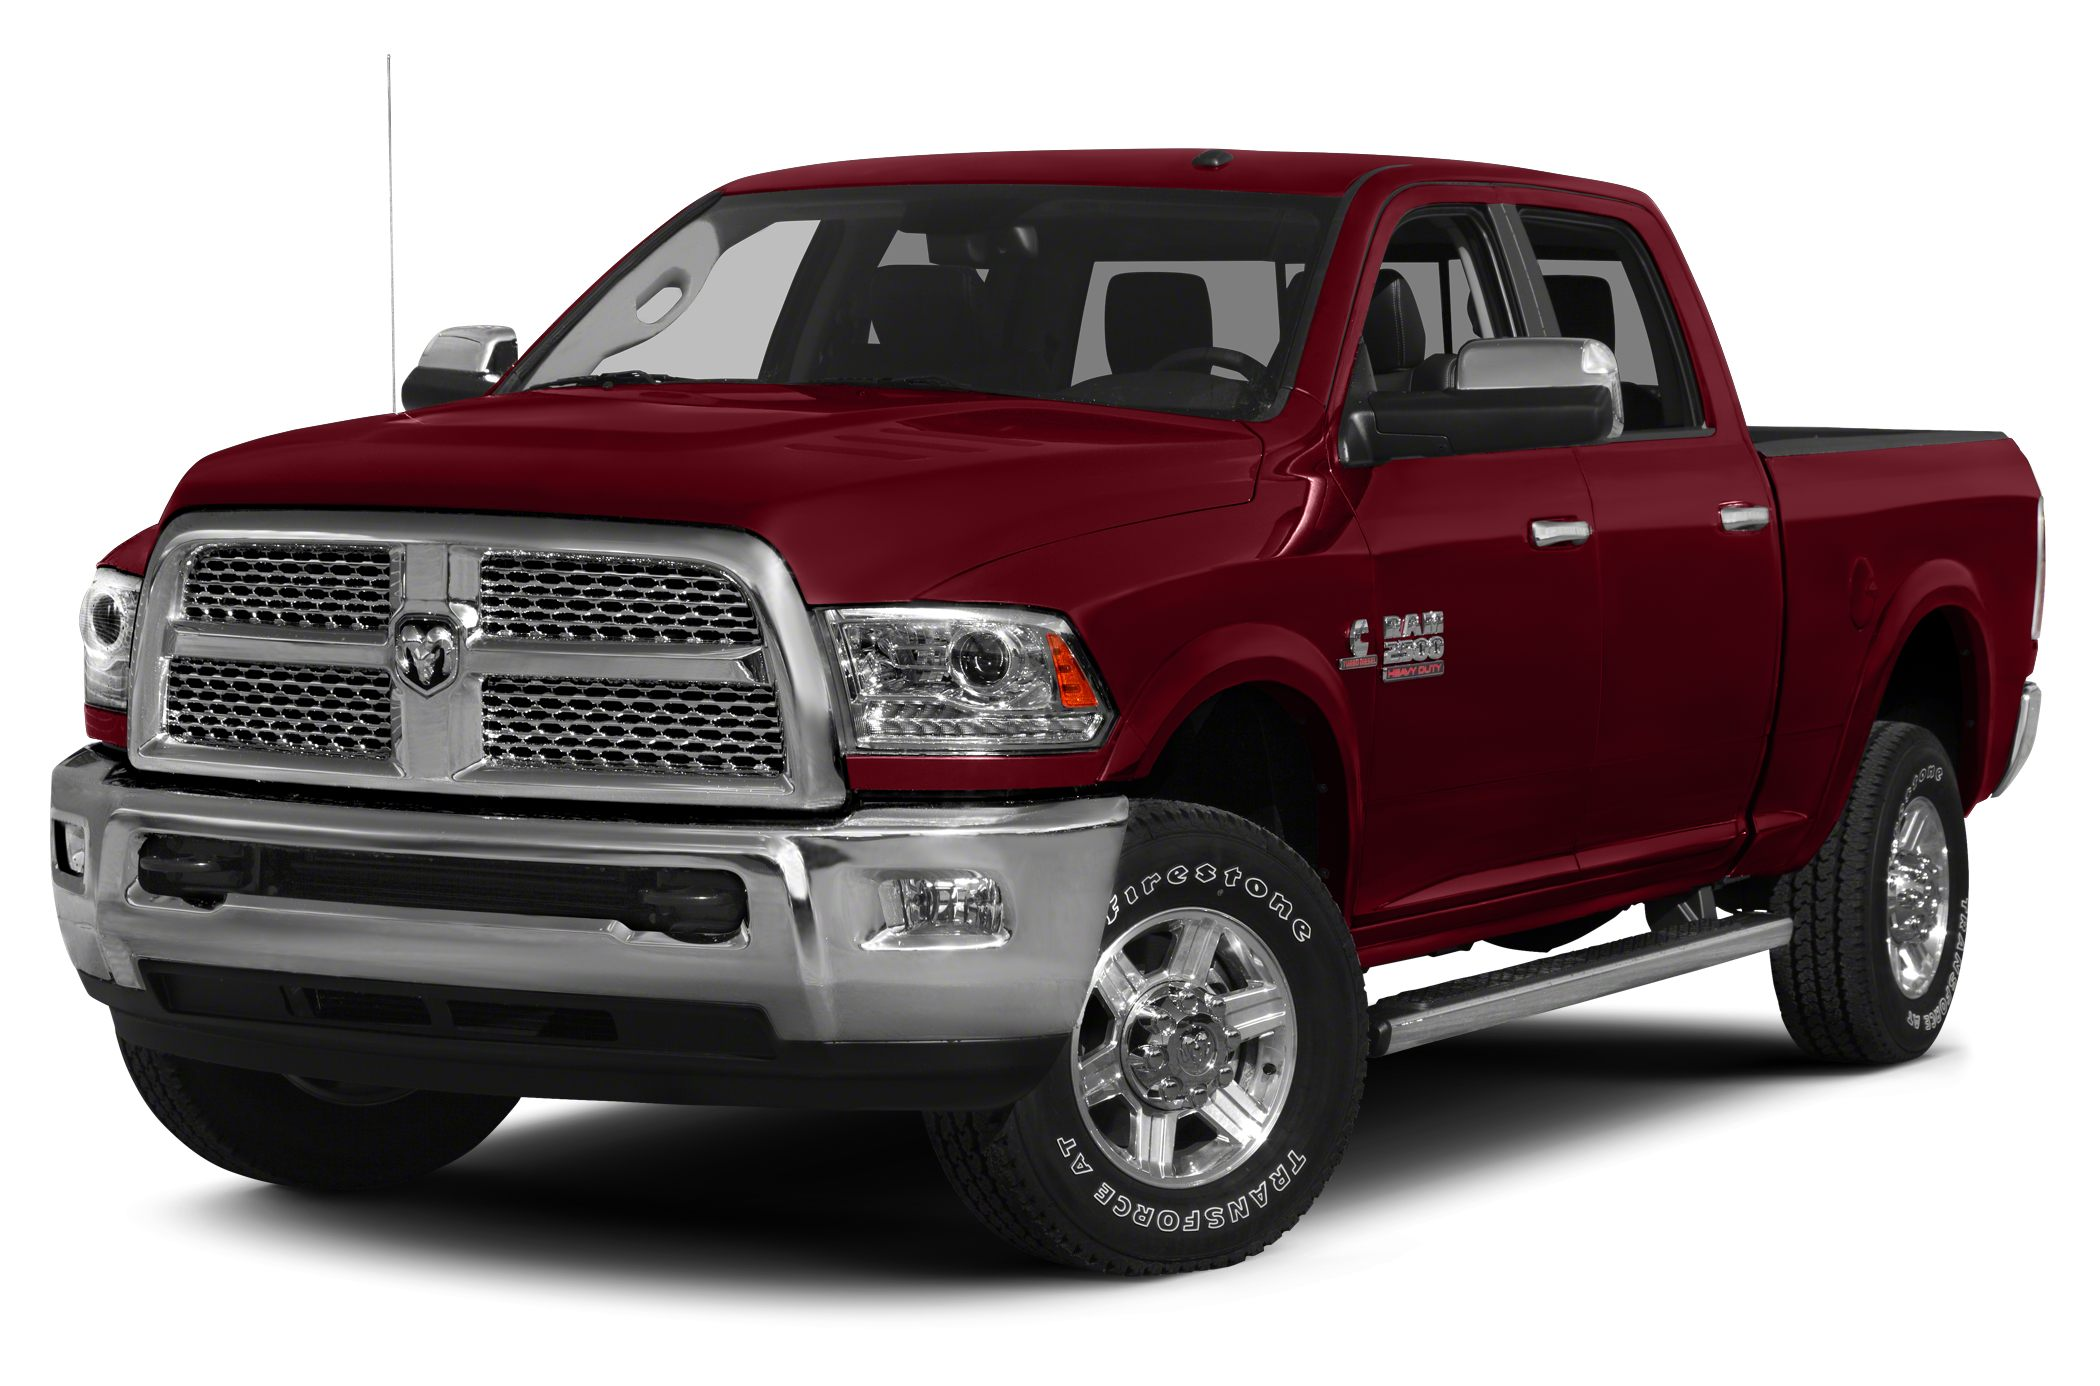 2015 RAM 2500 Tradesman Crew Cab Pickup for sale in Nicholasville for $51,530 with 0 miles.